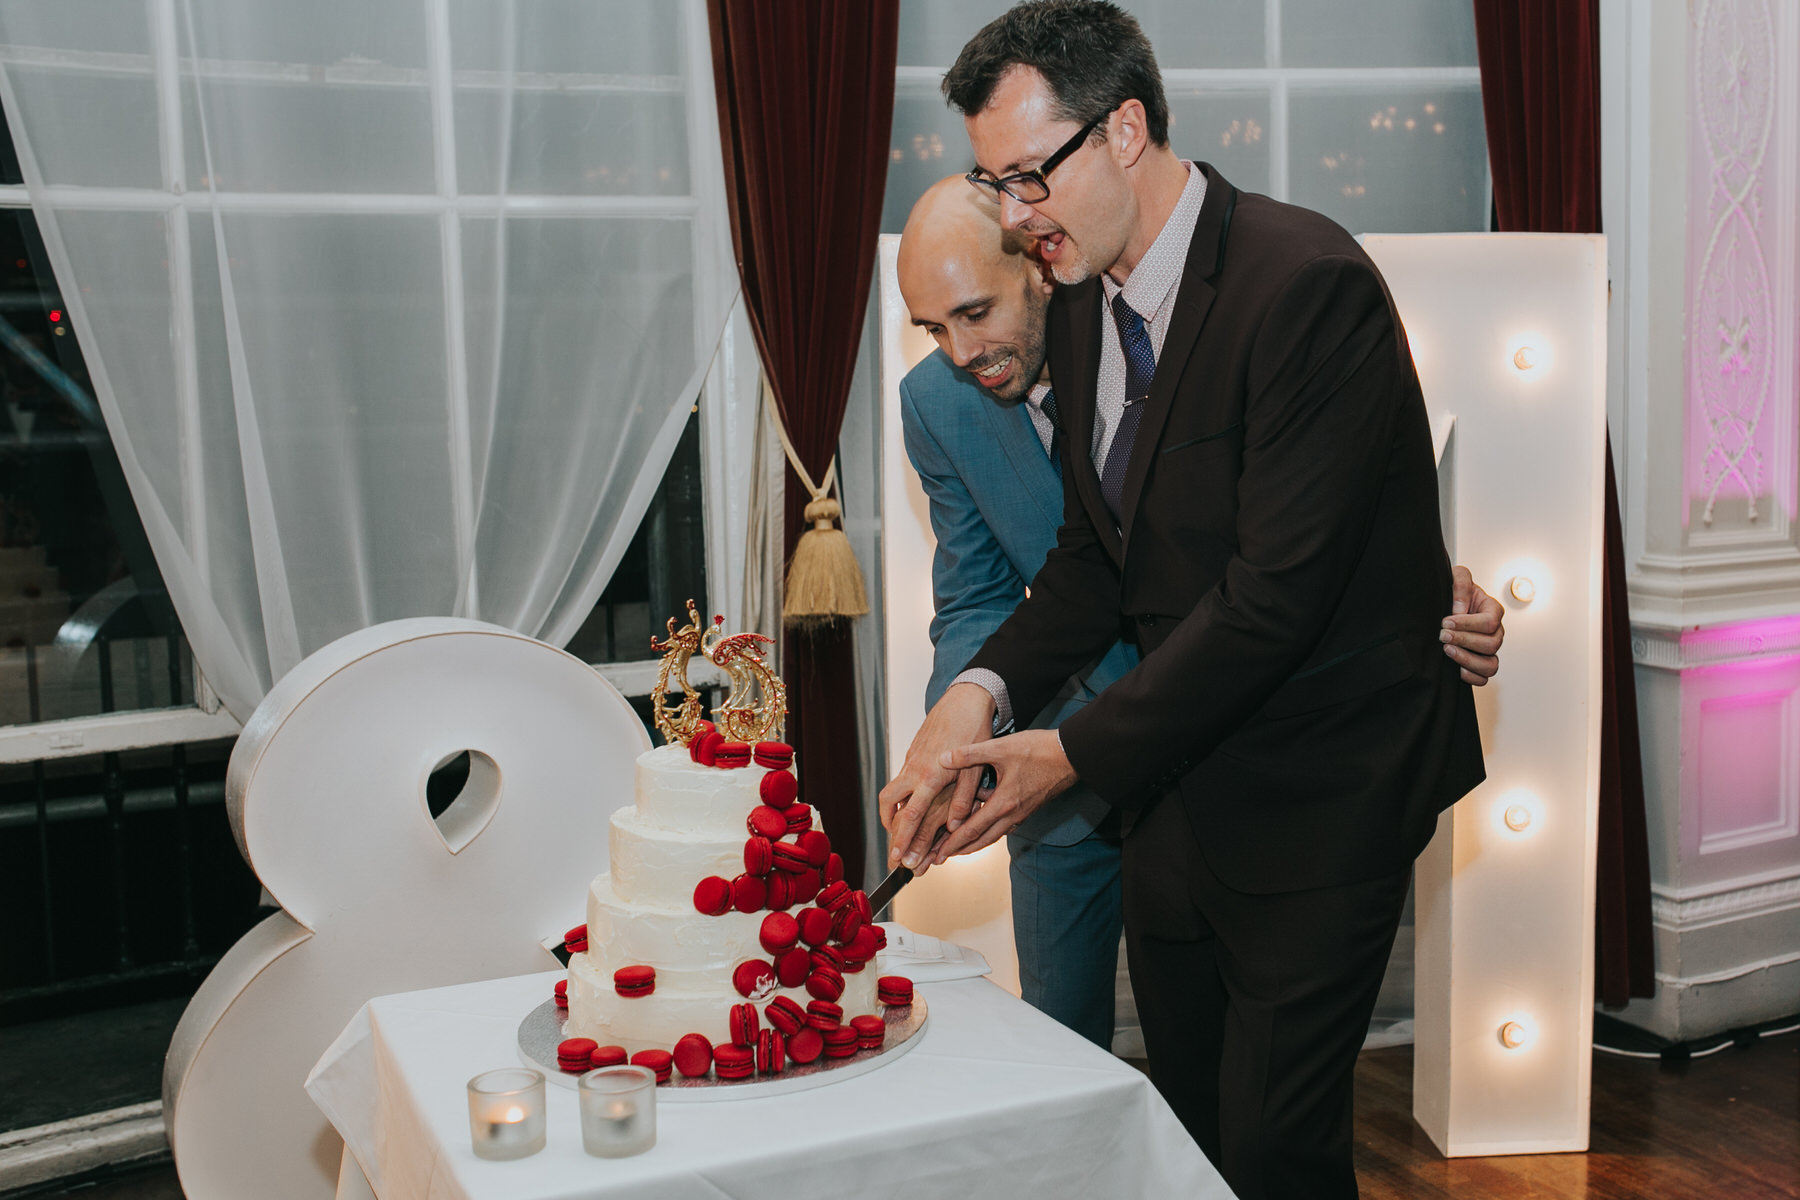 228 two grooms cutting wedding cake.jpg